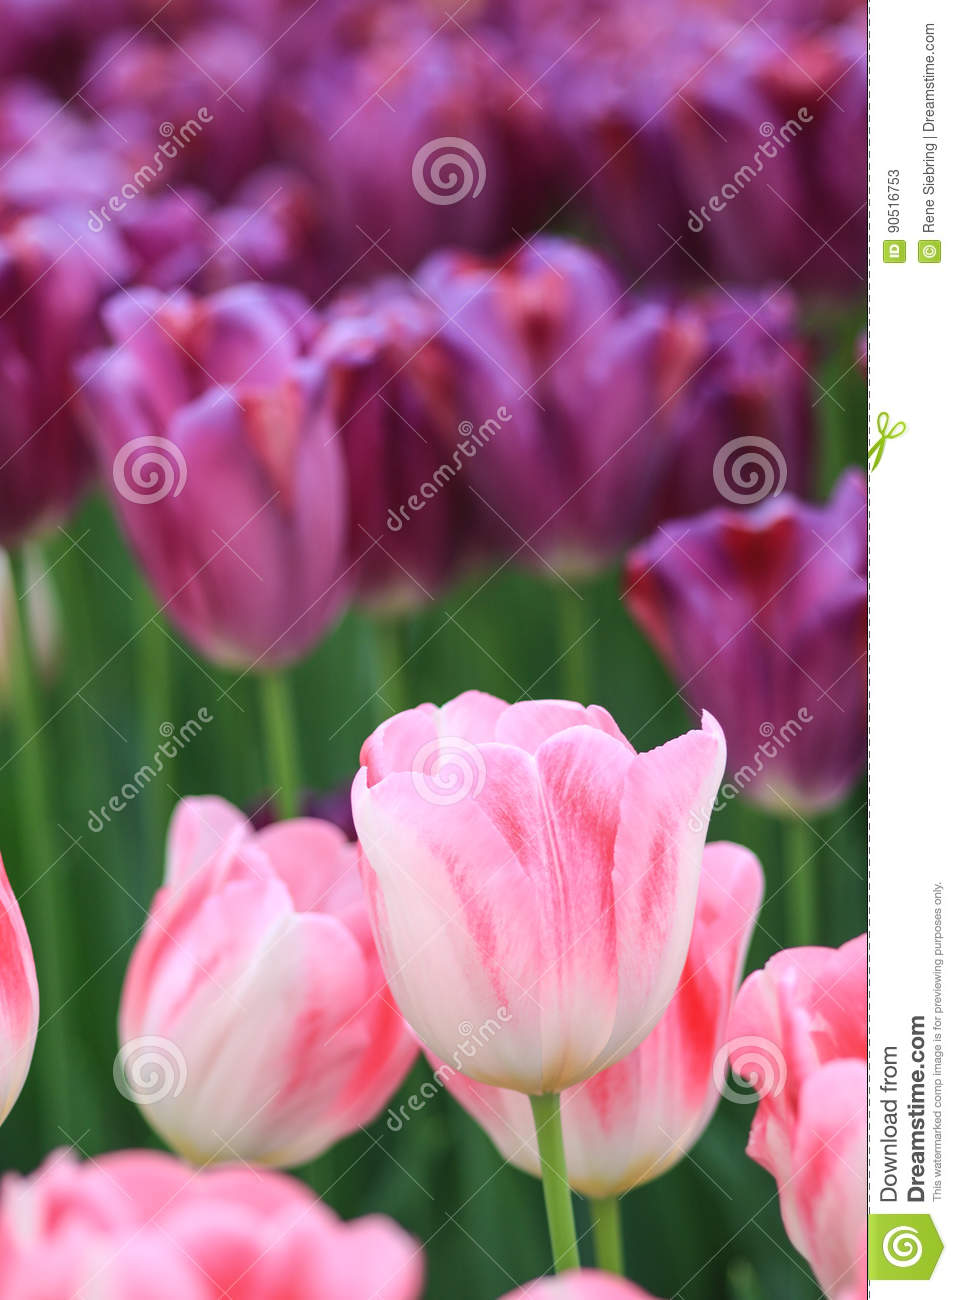 White Tulips With Pink Edges And Purple Tulips In The Background